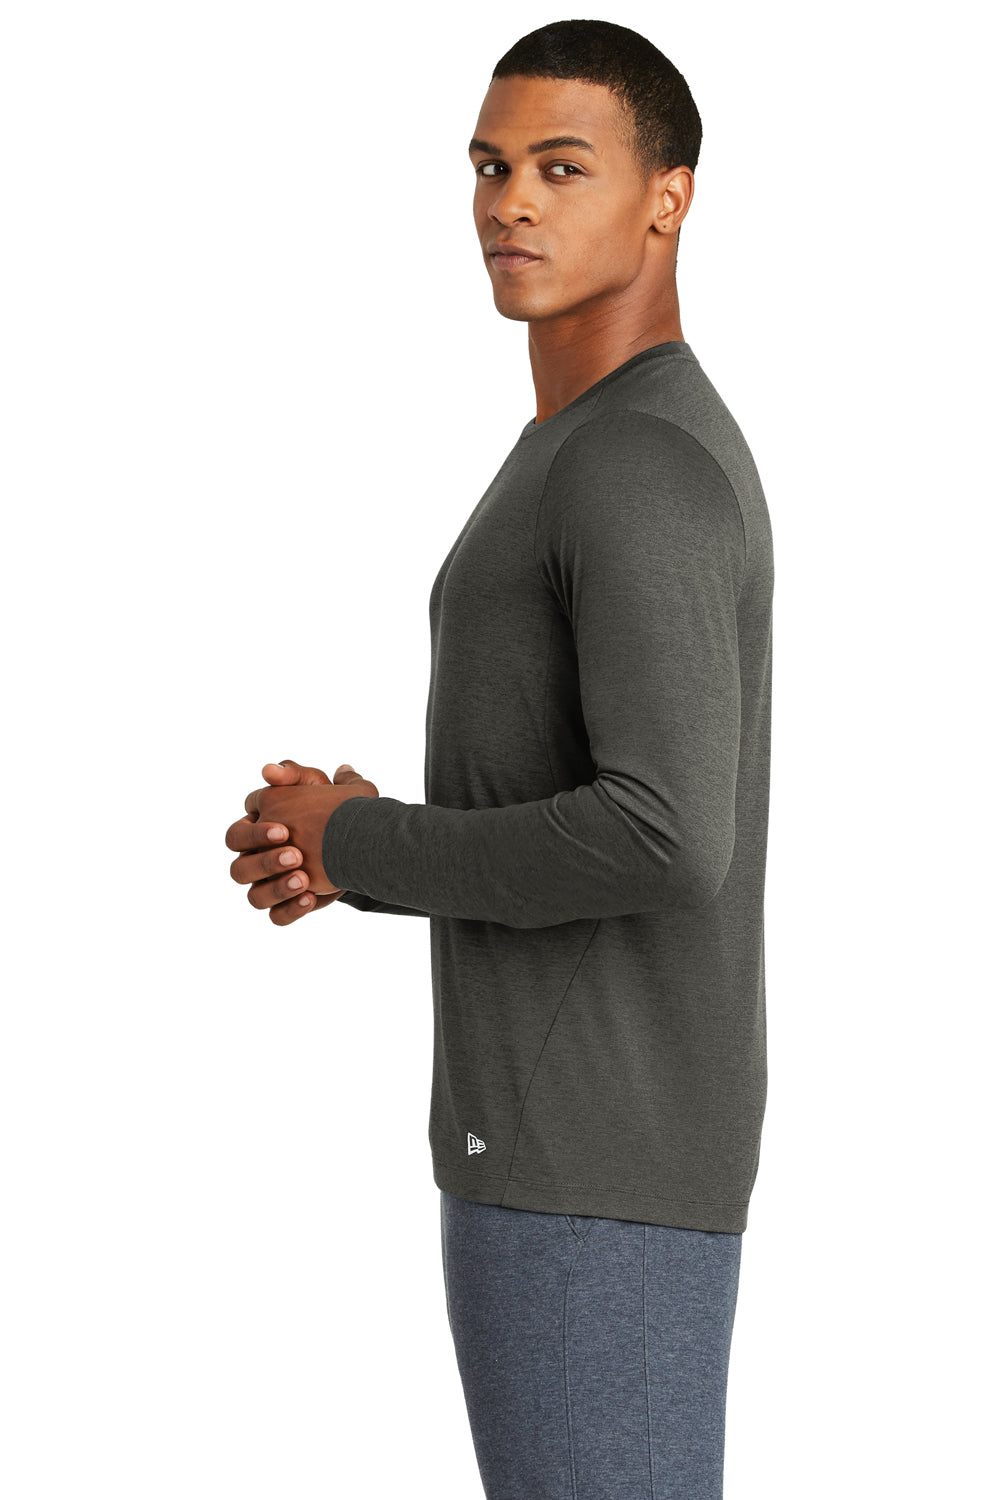 New Era NEA201 Mens Series Performance Moisture Wicking Long Sleeve Crewneck T-Shirt Graphite Grey Side